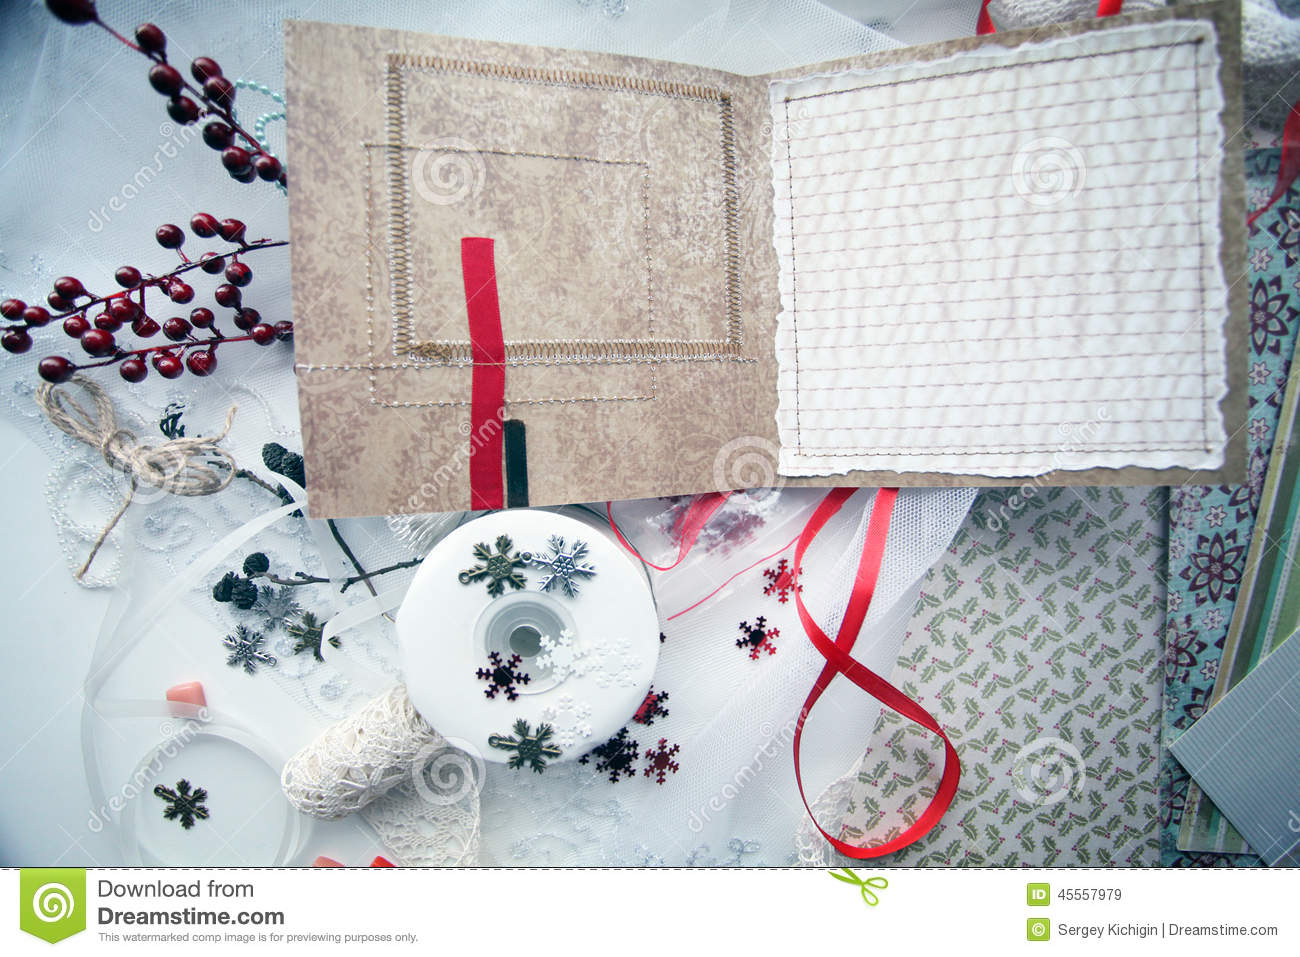 Production of Christmas cards scrapbooking